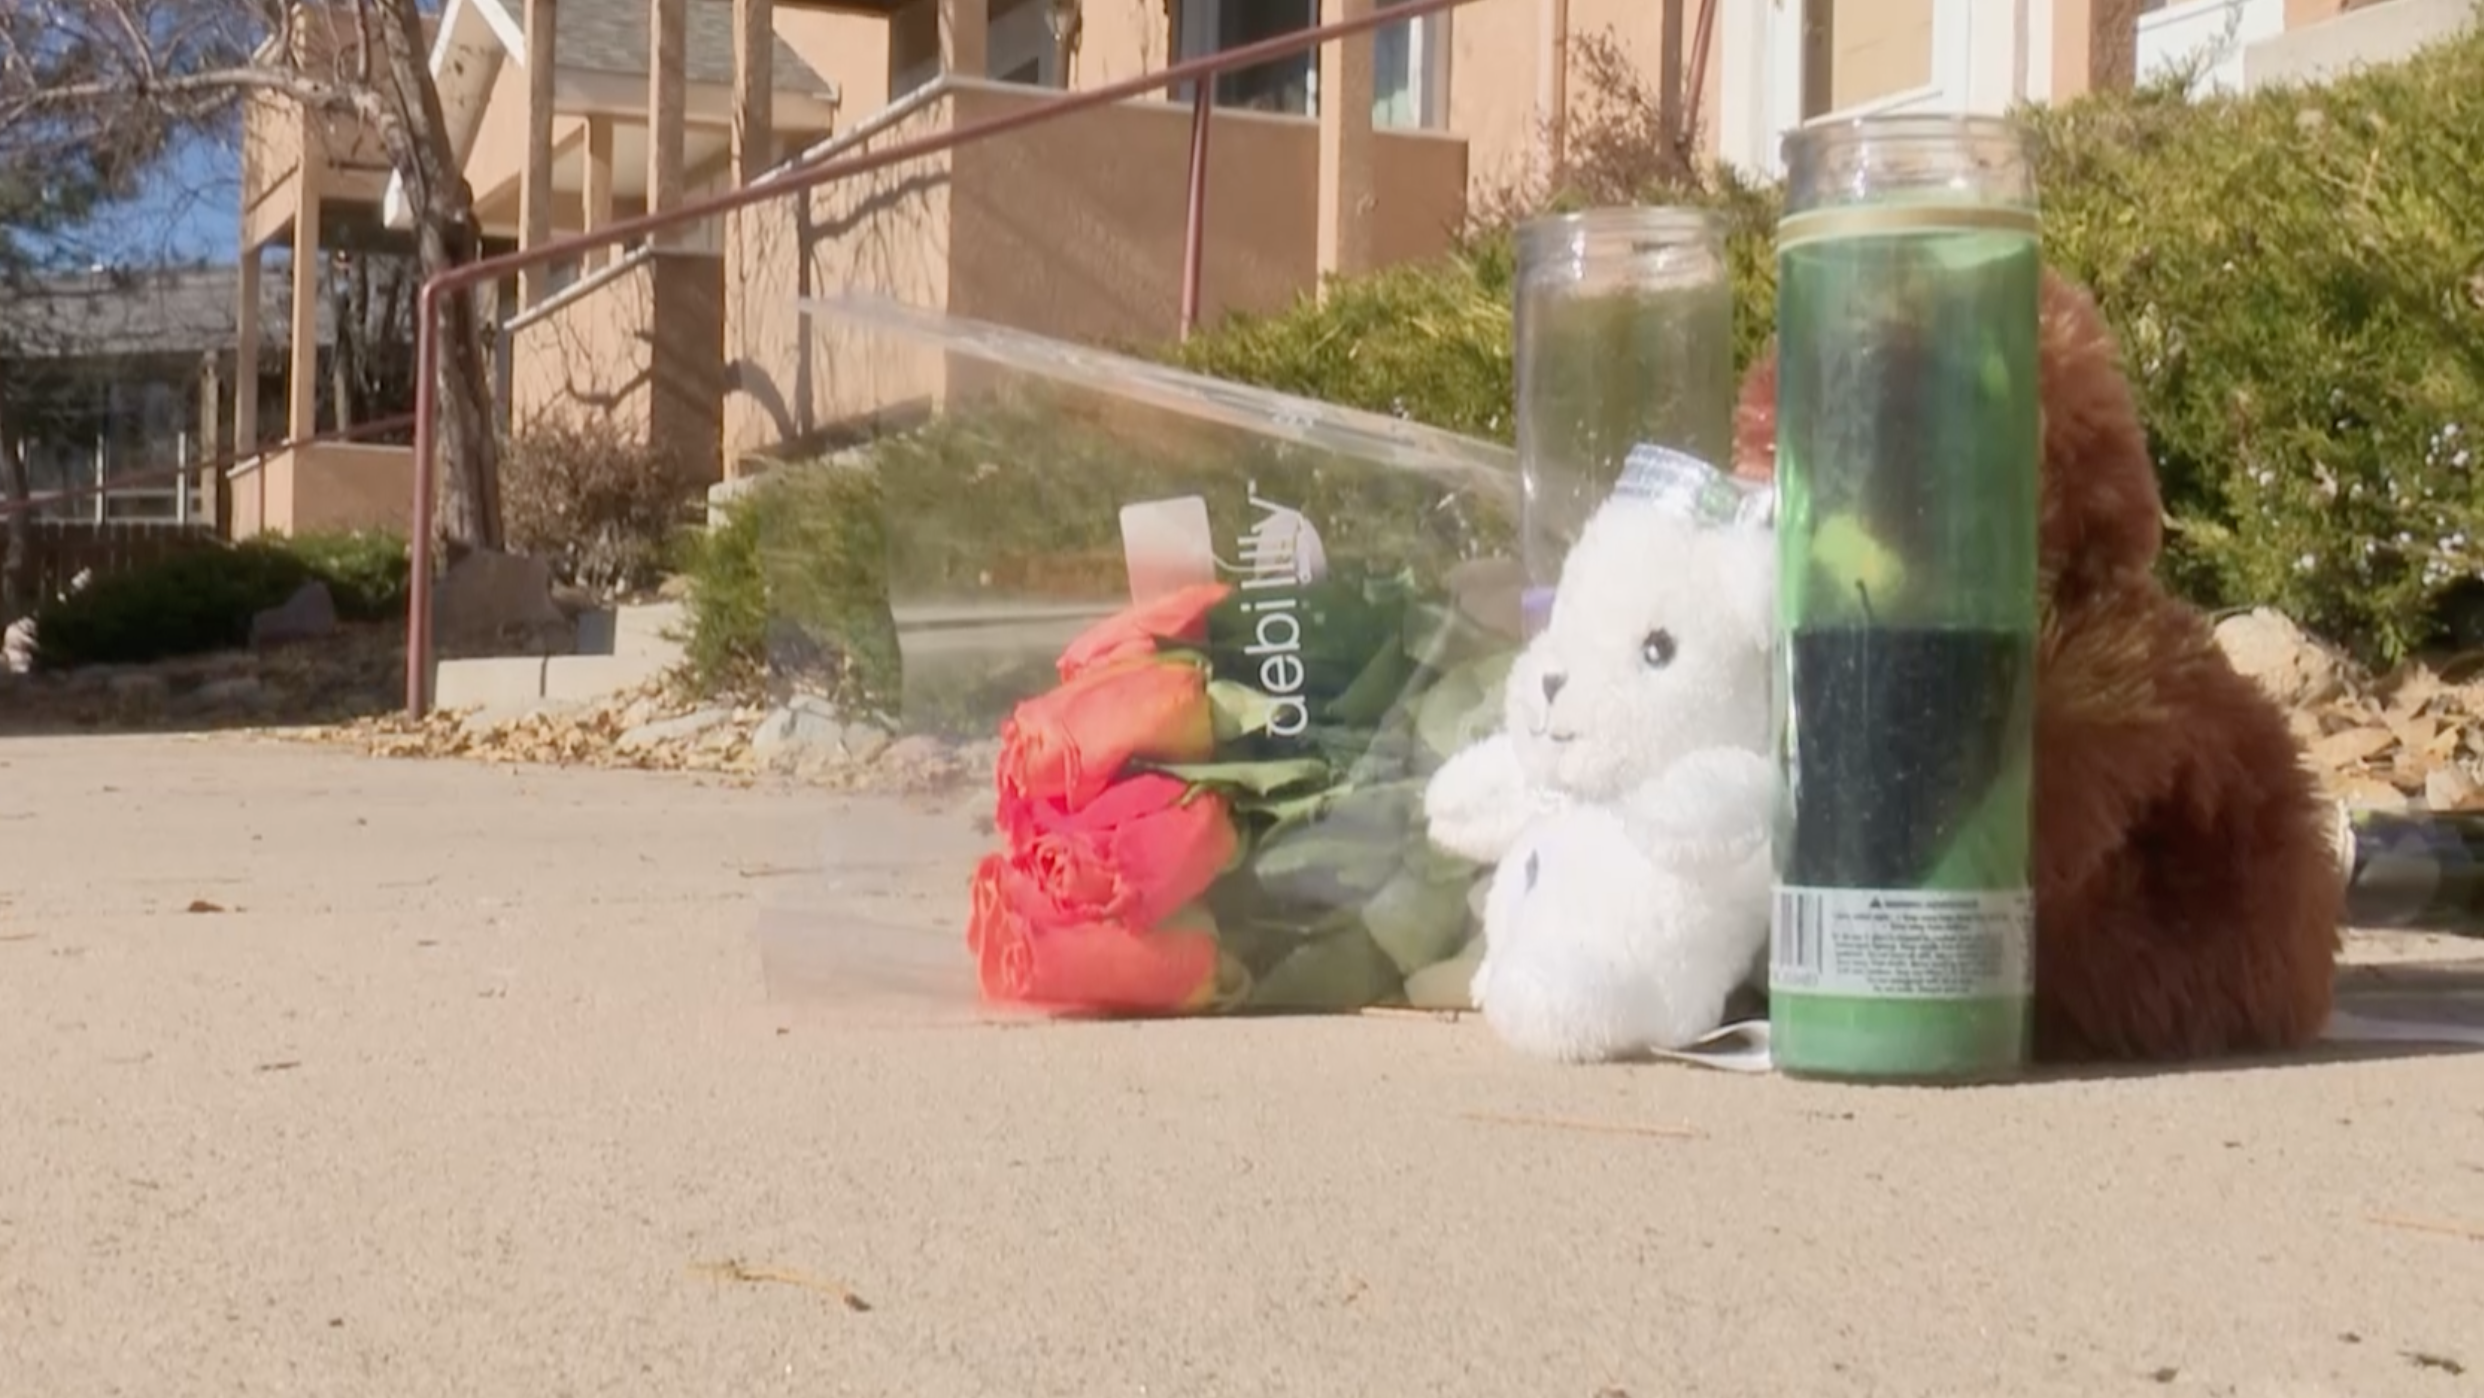 Memorial for 15-year-old Isaac James who was shot and killed Friday night